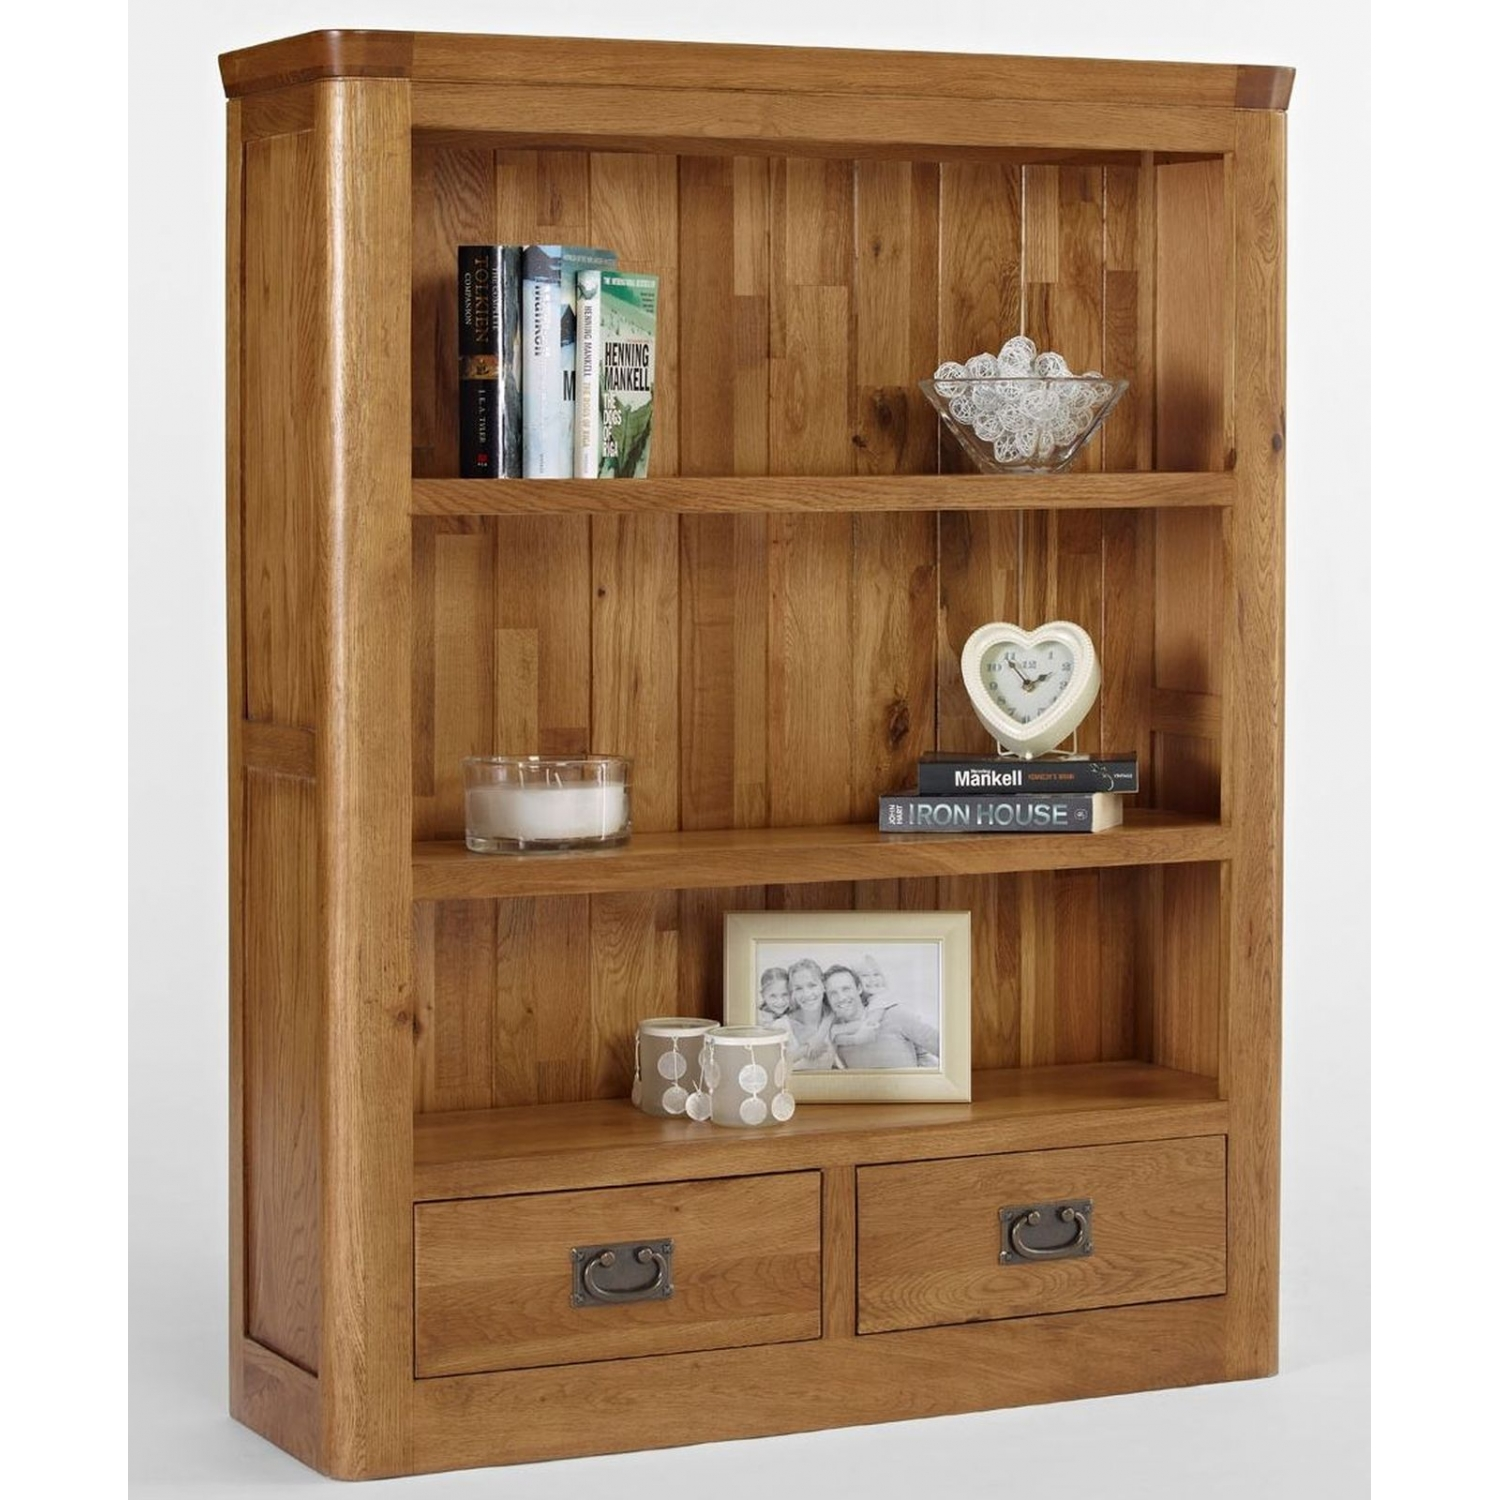 Artisan solid oak bedroom furniture small bookcase with for Small bedroom bookcase